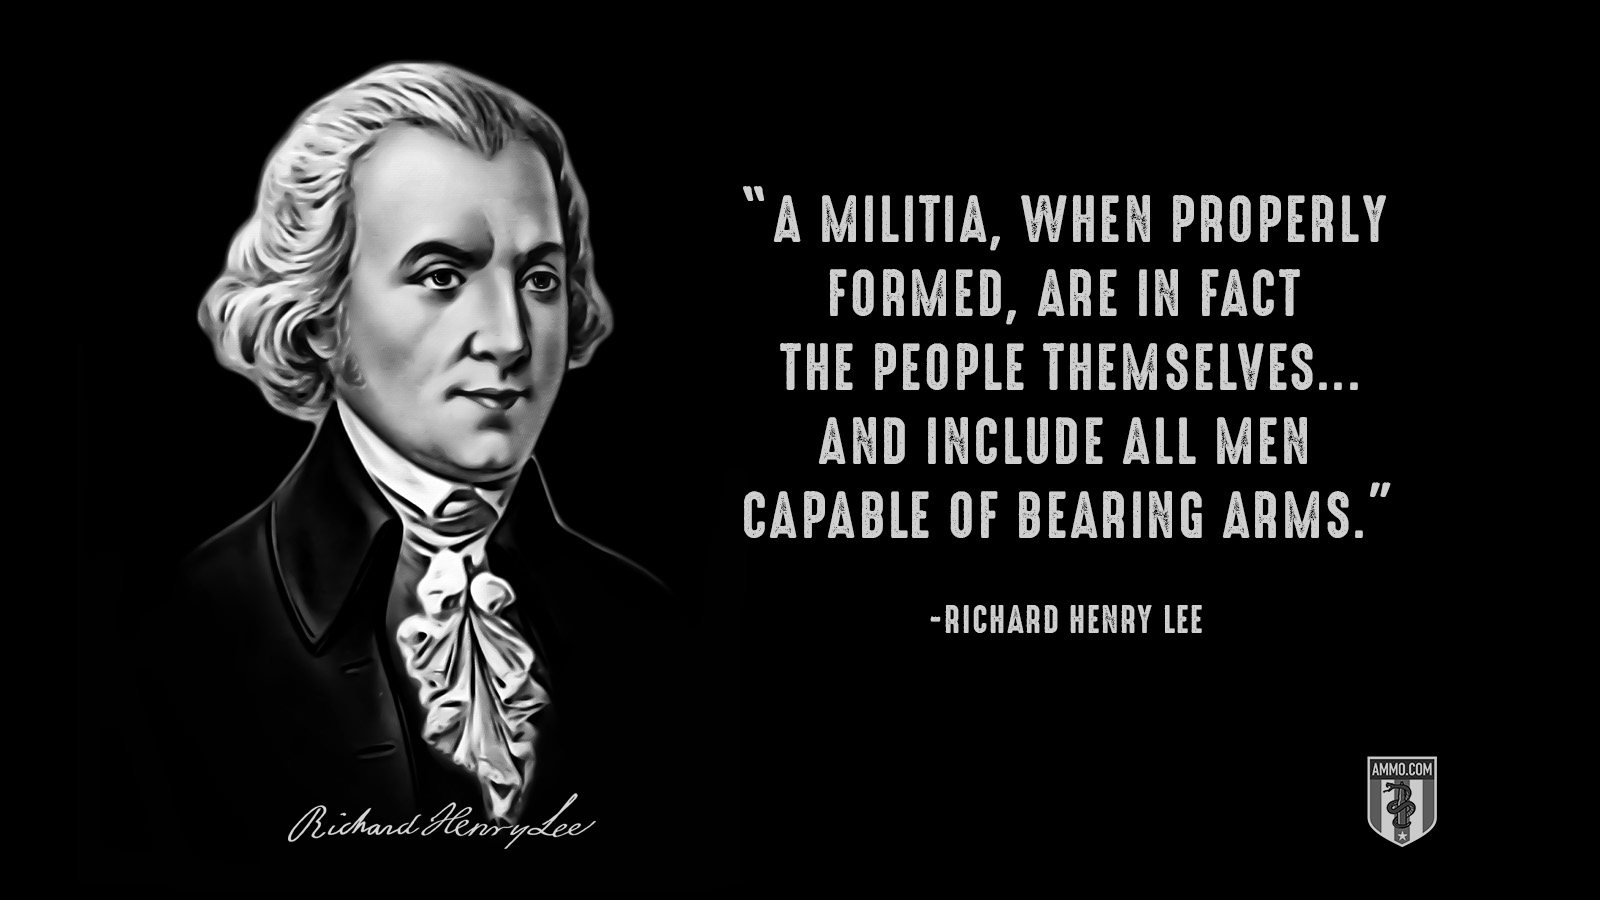 """A militia, when properly formed, are in fact the people themselves...and include all men capable of bearing arms."" - Richard Henry Lee"